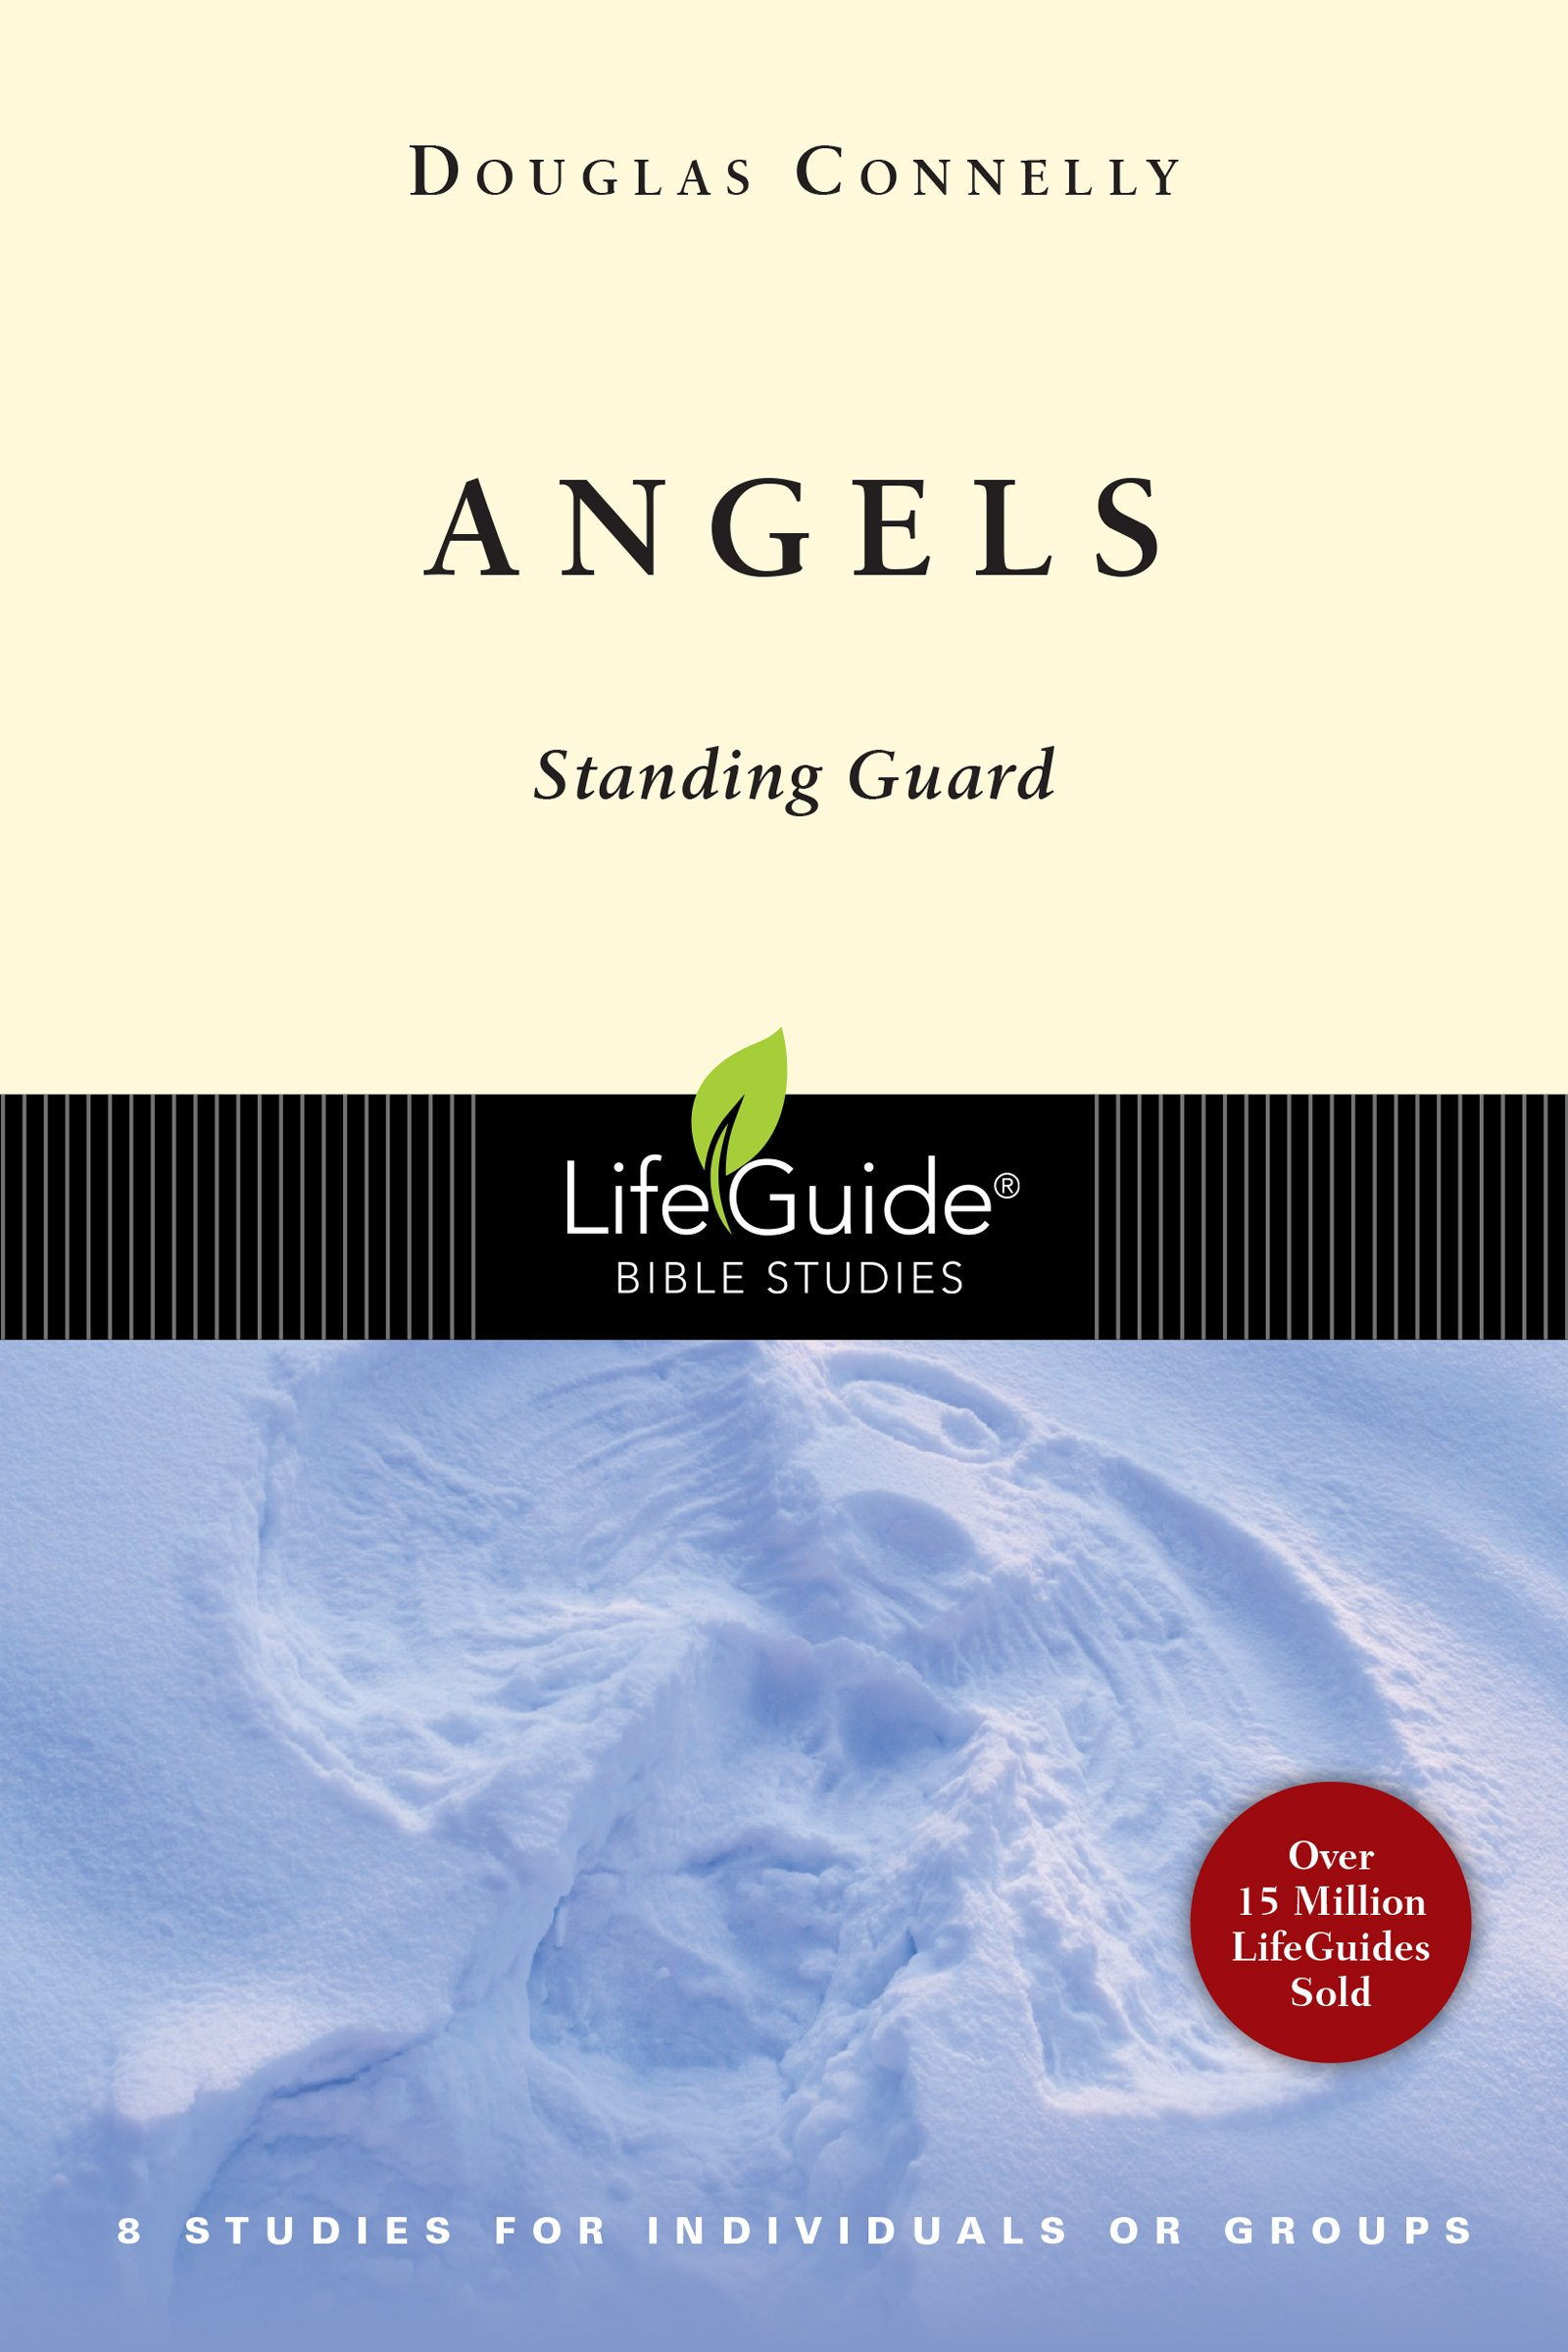 Download Angels: 8 Studies for Individuals or Groups (LifeGuide Bible Studies) PDF